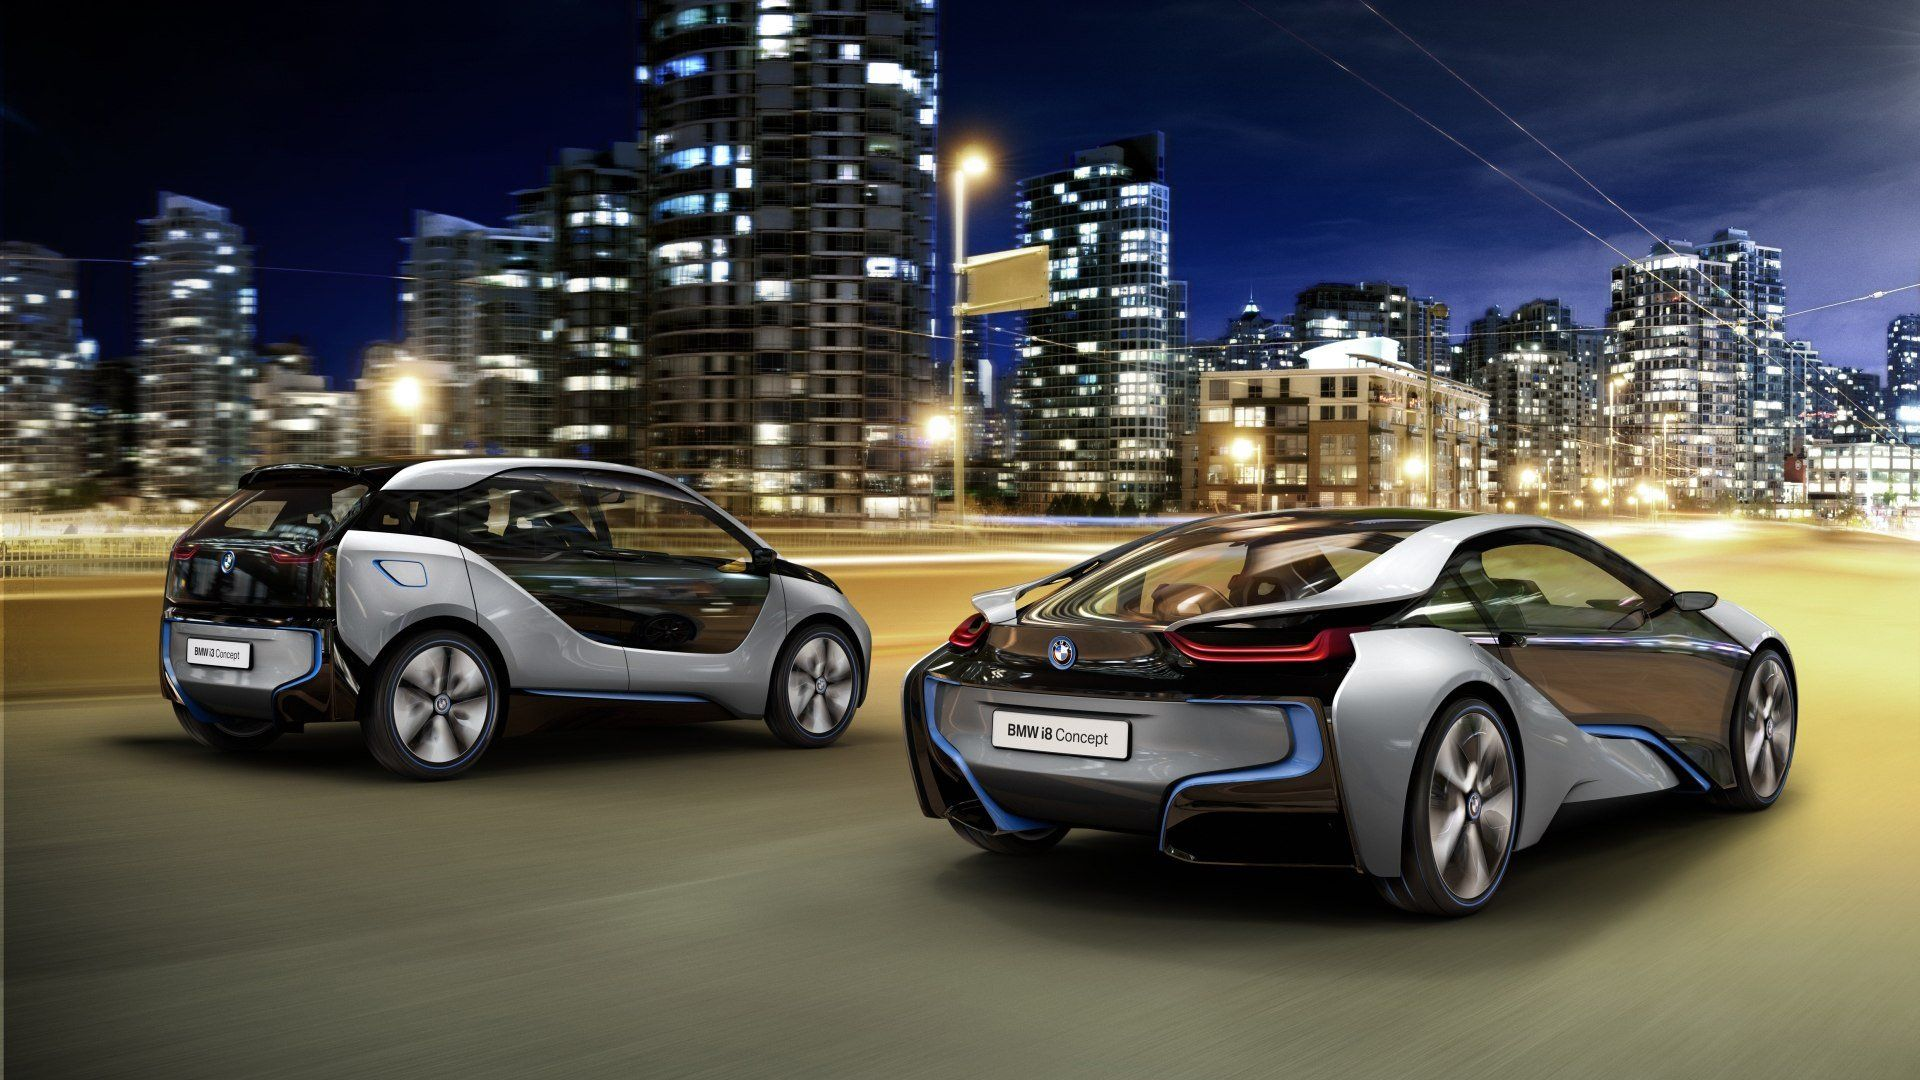 1920x1080 Bmw I3 Concept Side City Travel Hd Wallpapers 1080p Car